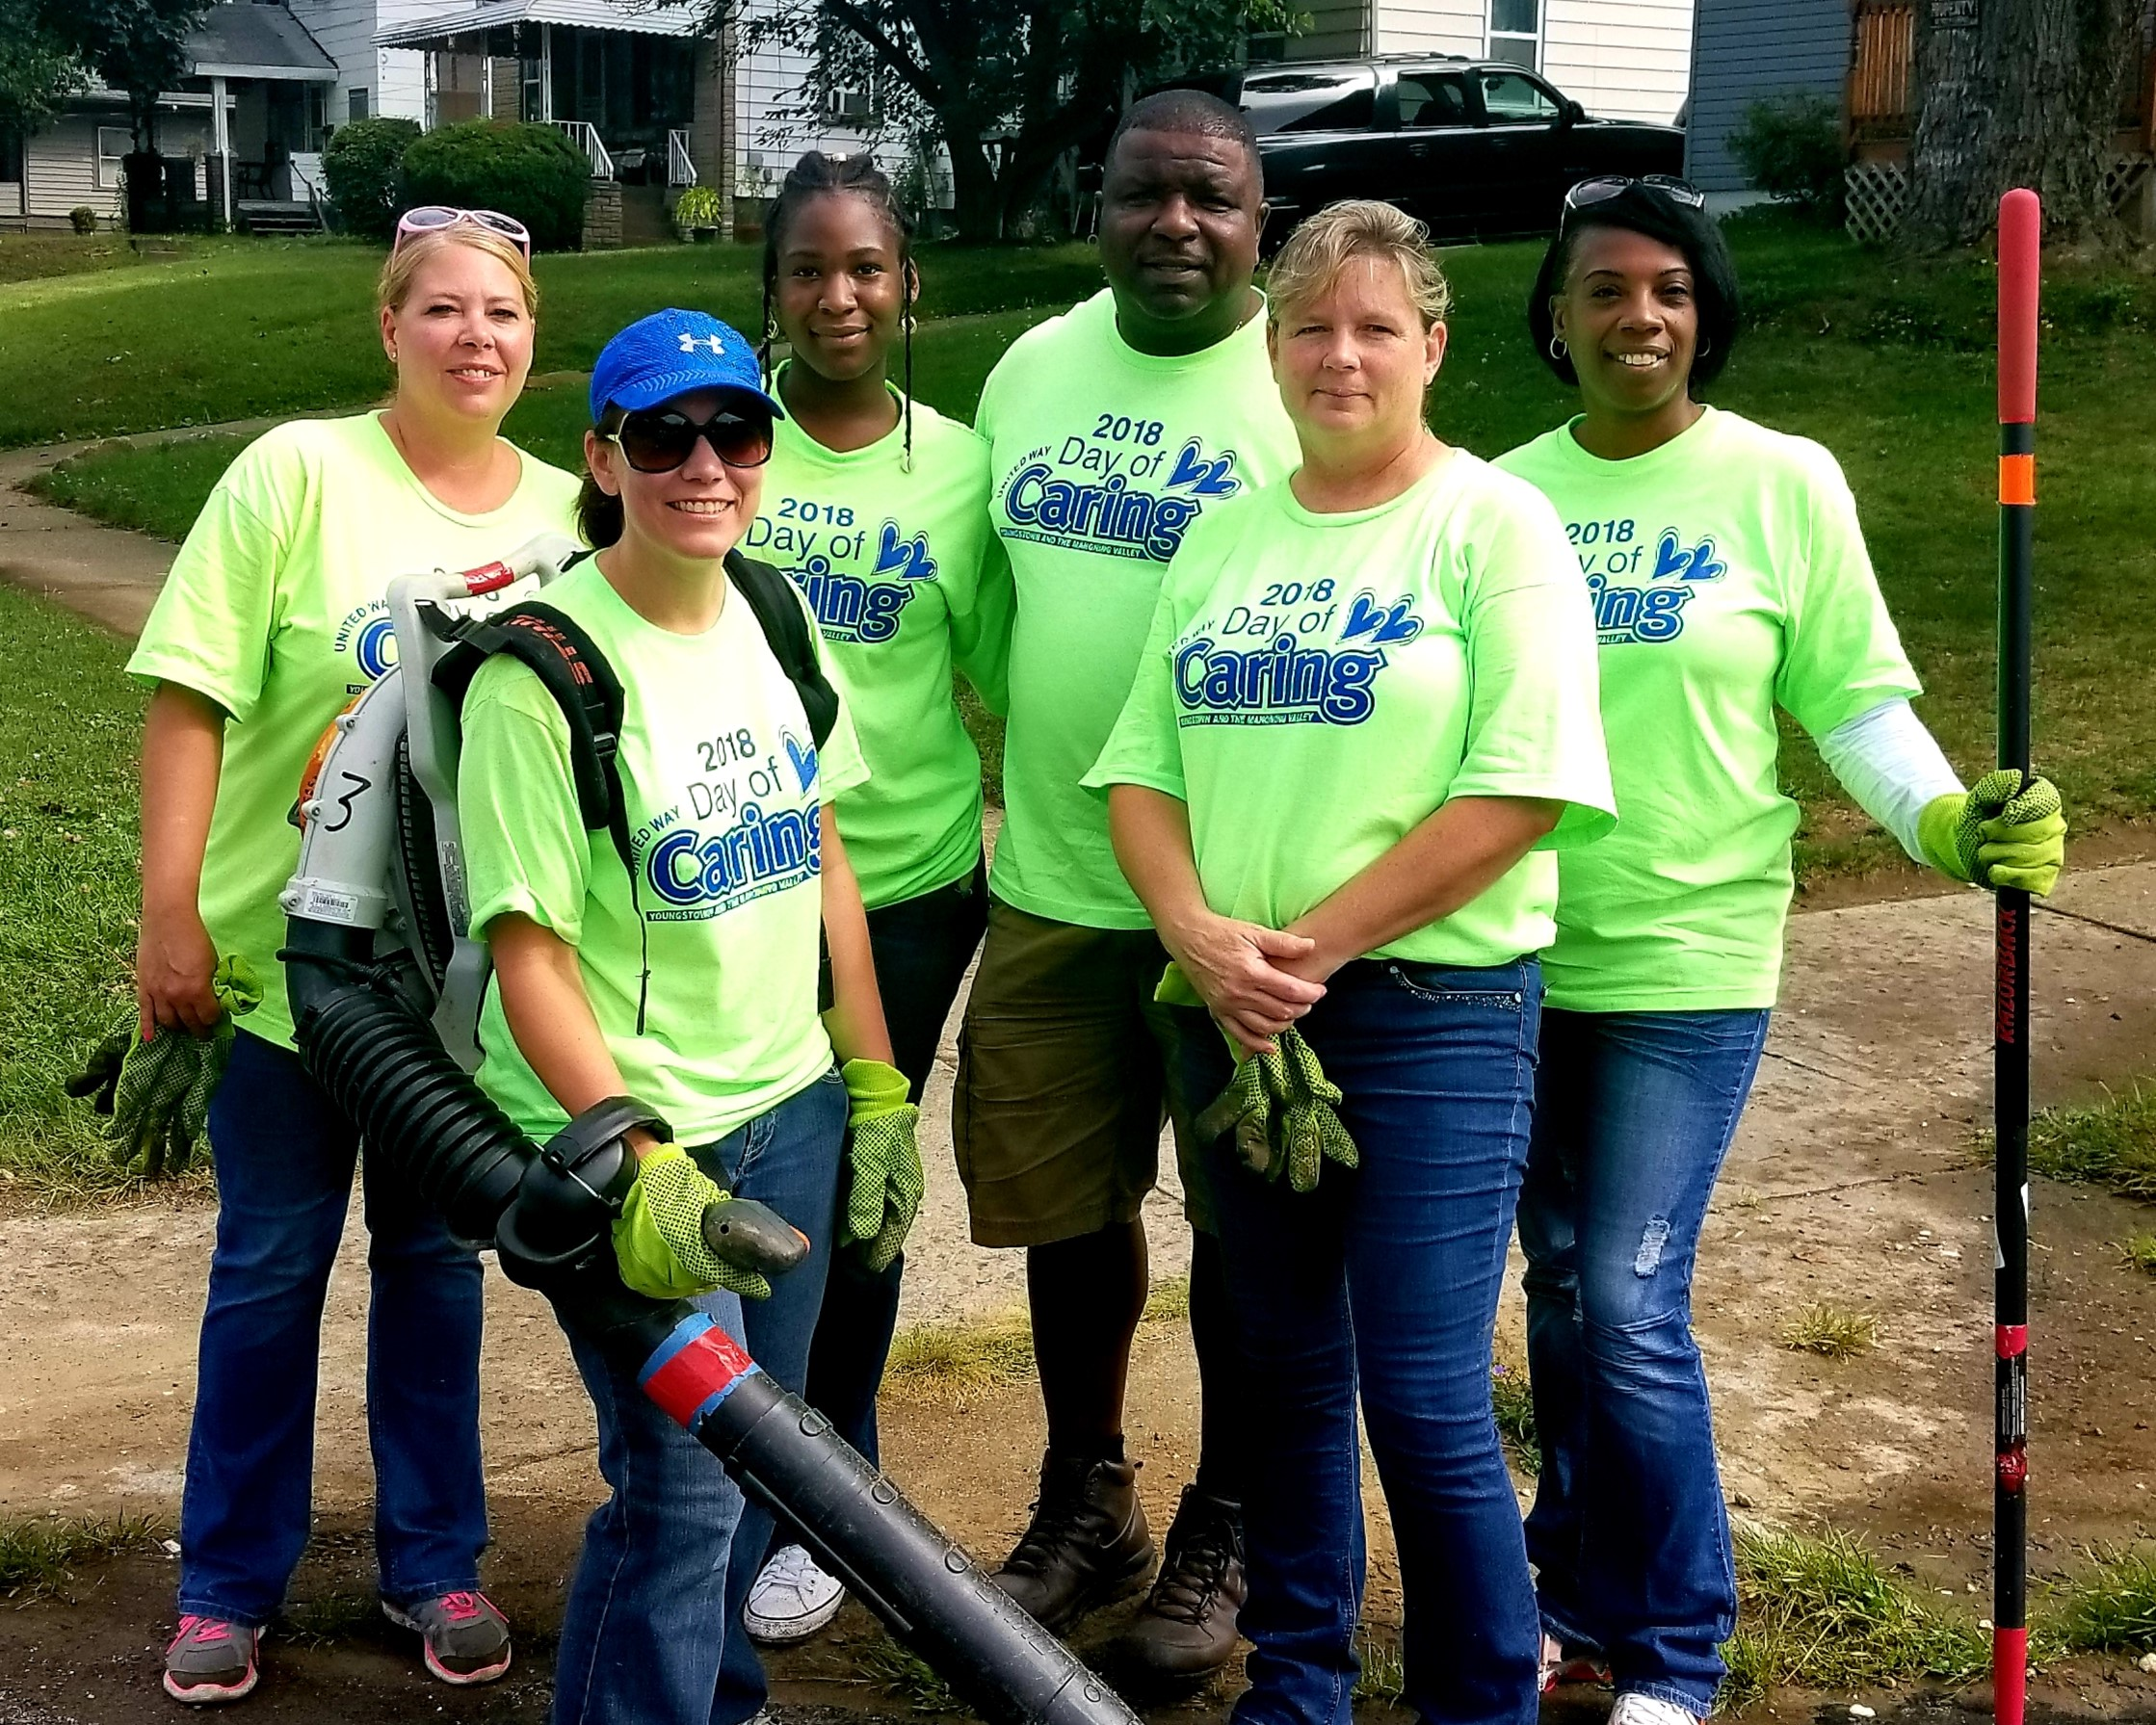 OSP Women in Corrections Participated in the Annual Day of Caring